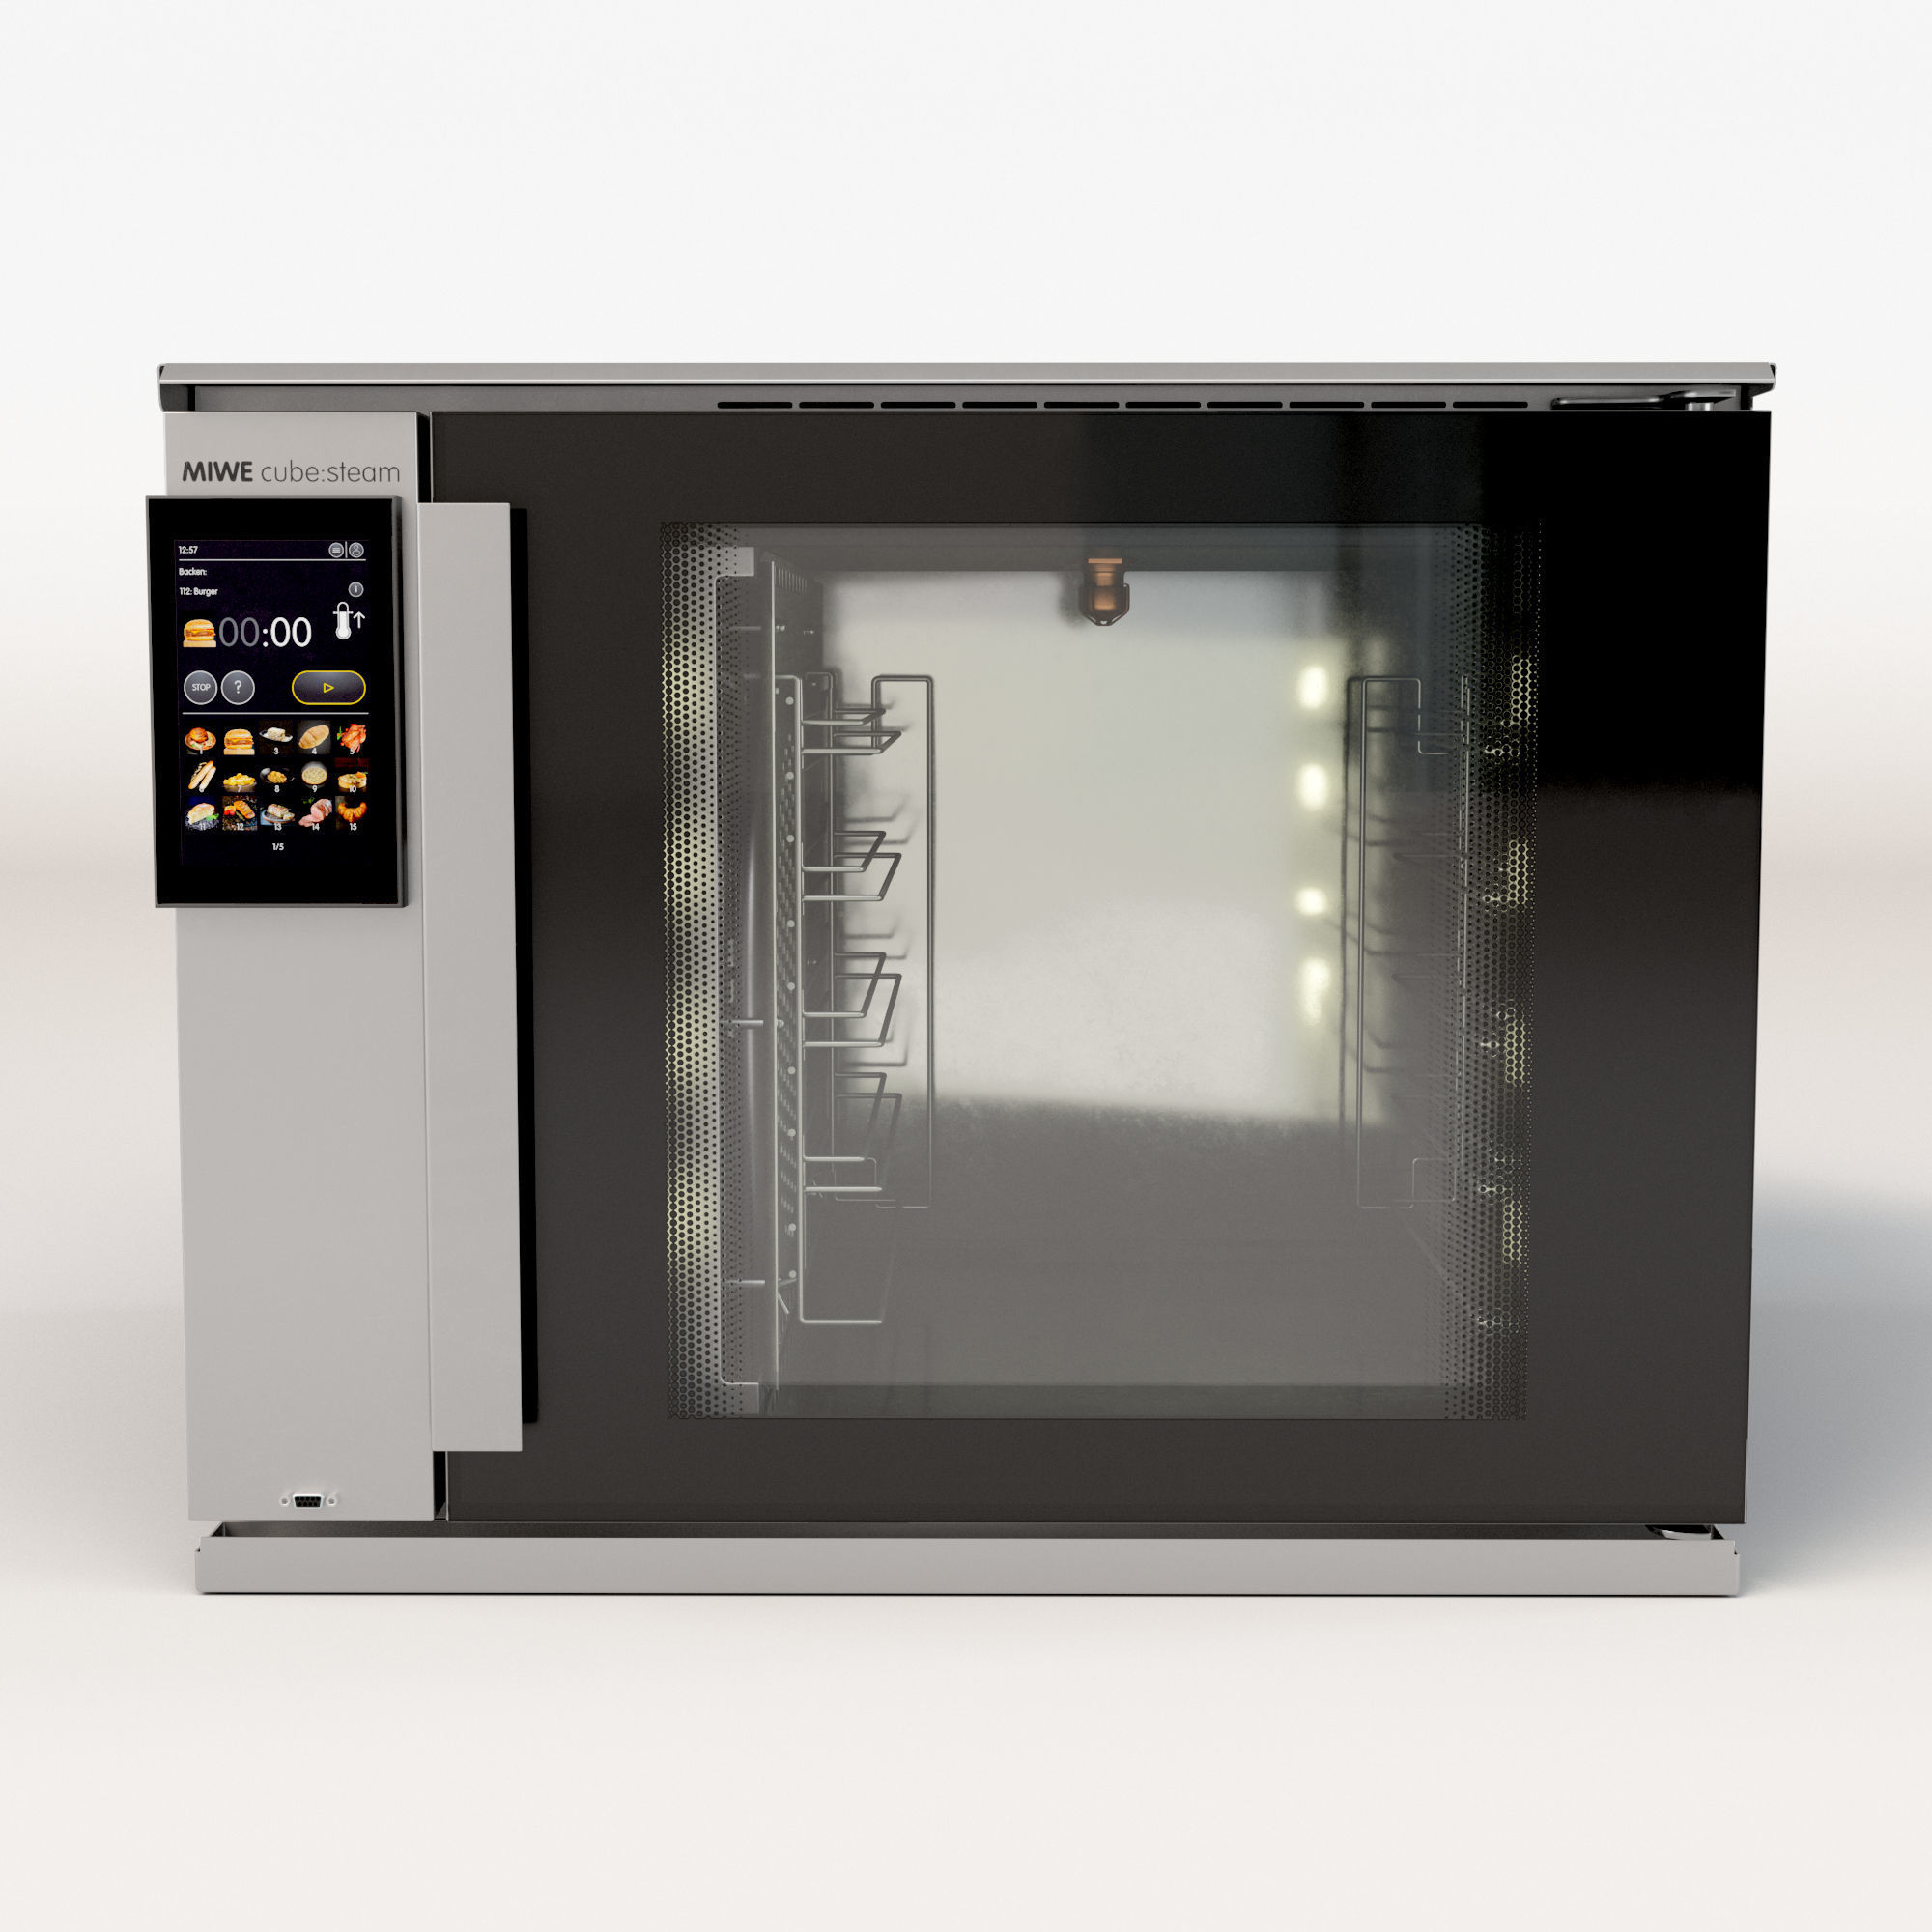 MIWE cube Steam convection oven